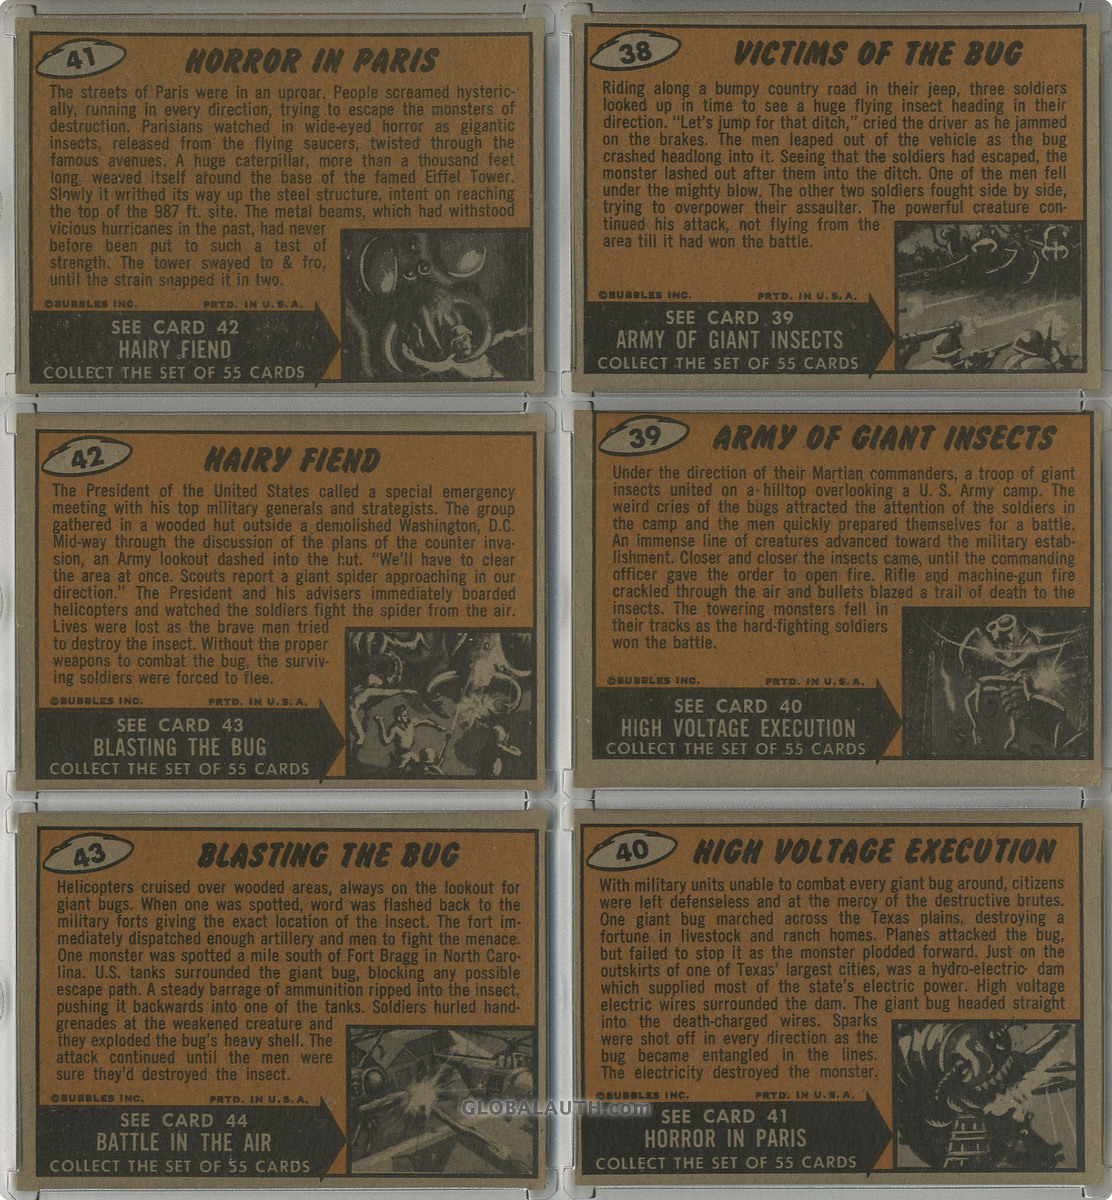 1962-mars-attacks-non-sports-card-set-set-images.jpg, #13